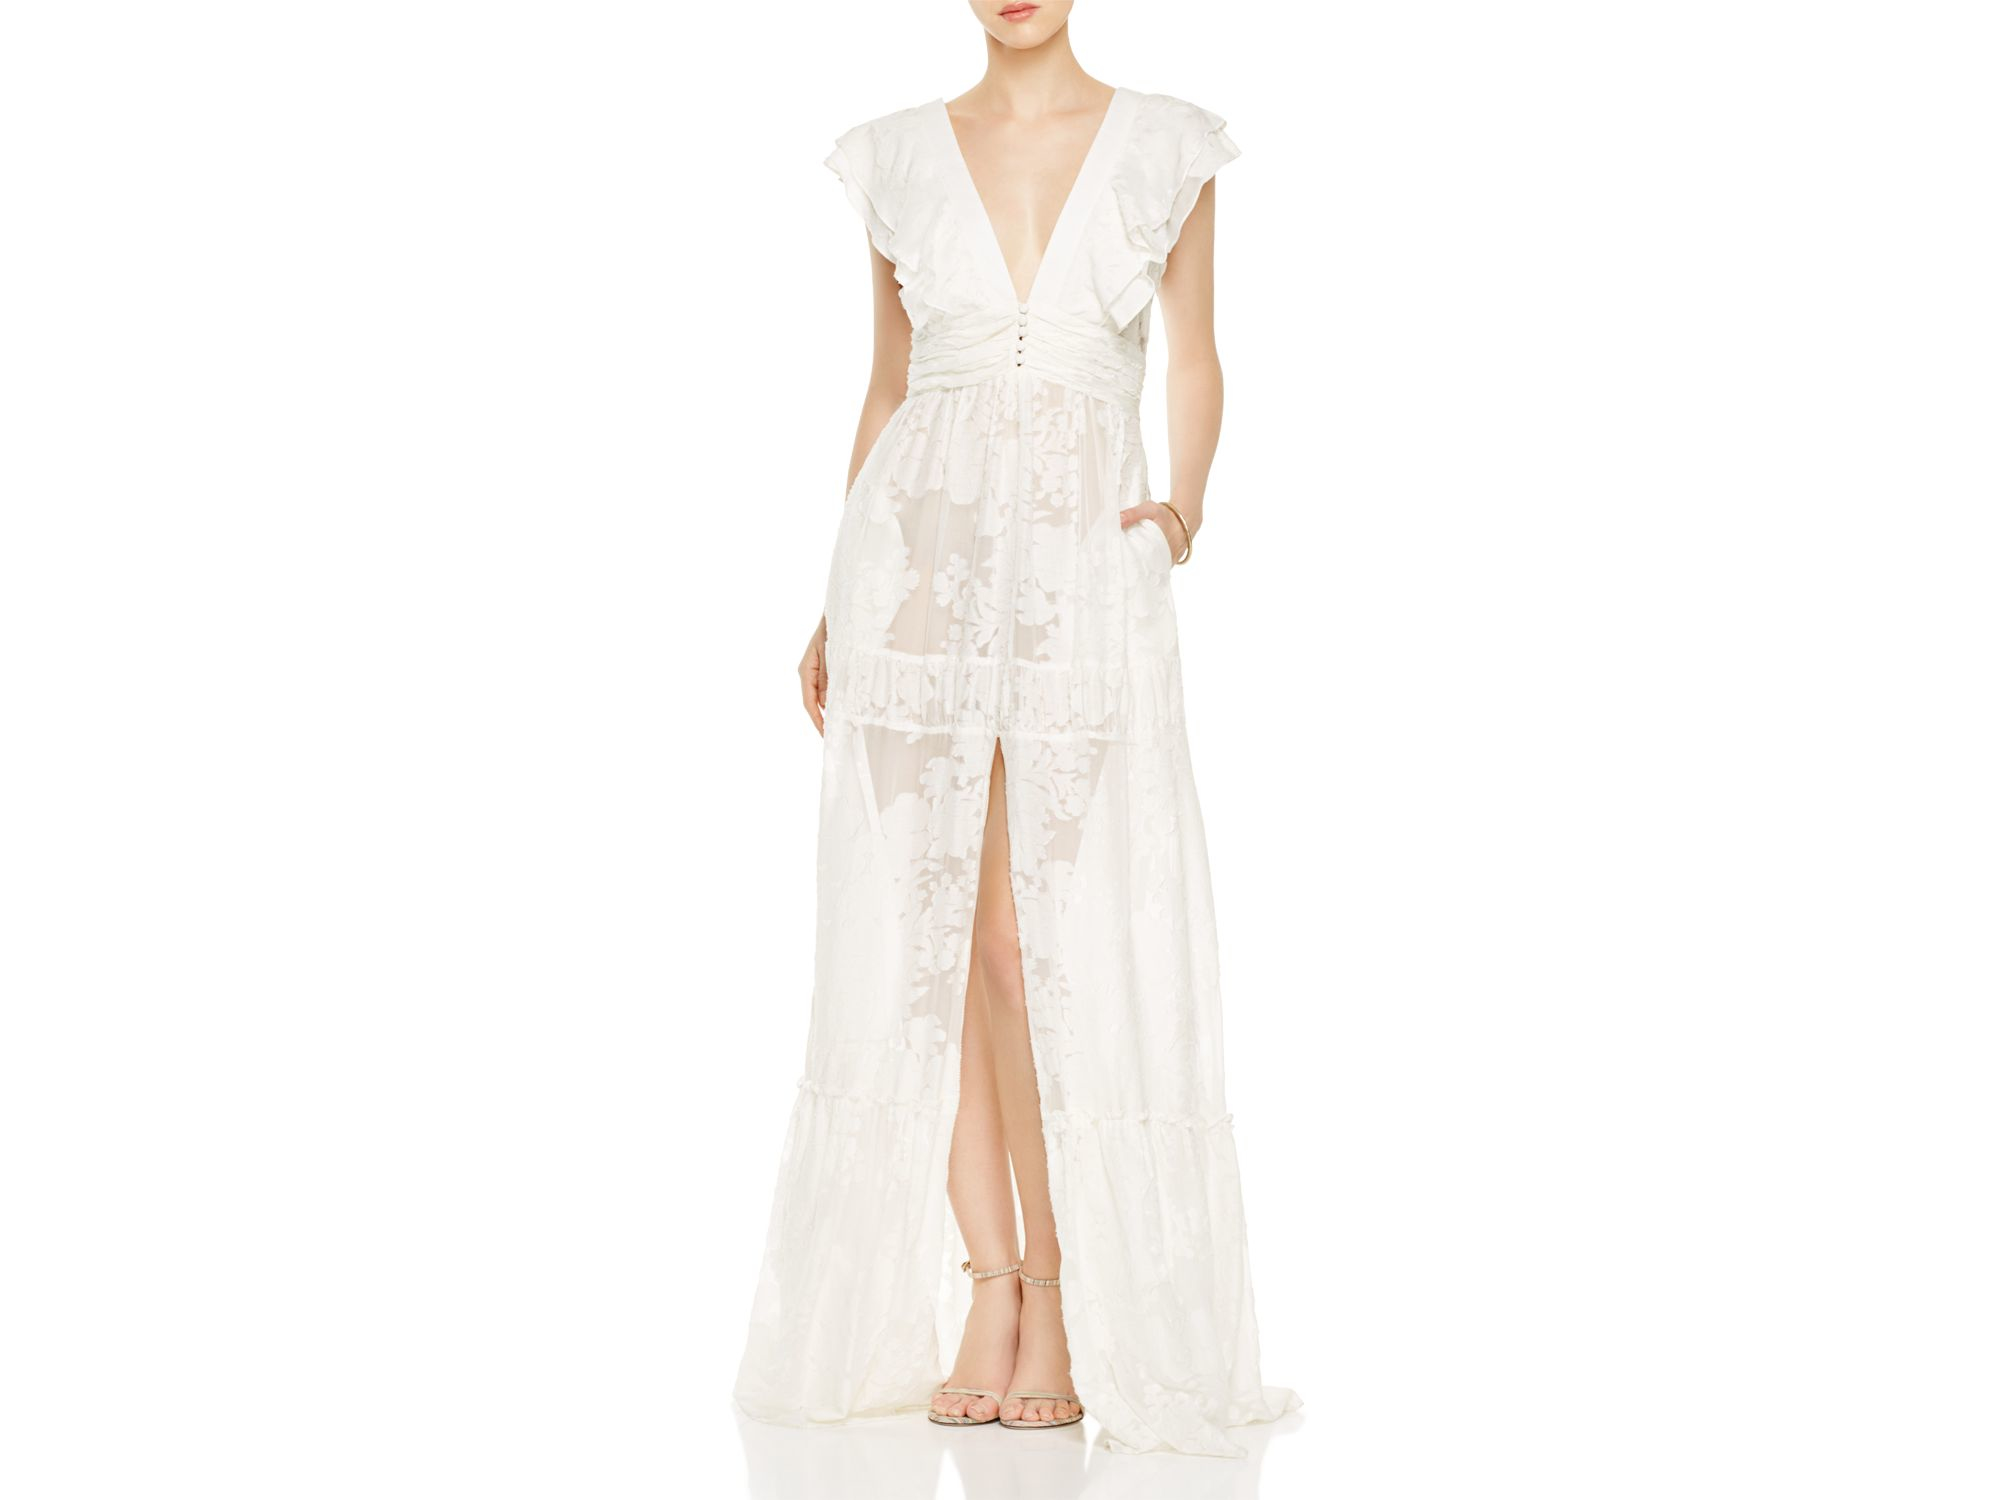 Lyst - Rachel Zoe Rory Floral Fil Coupe Gown in White